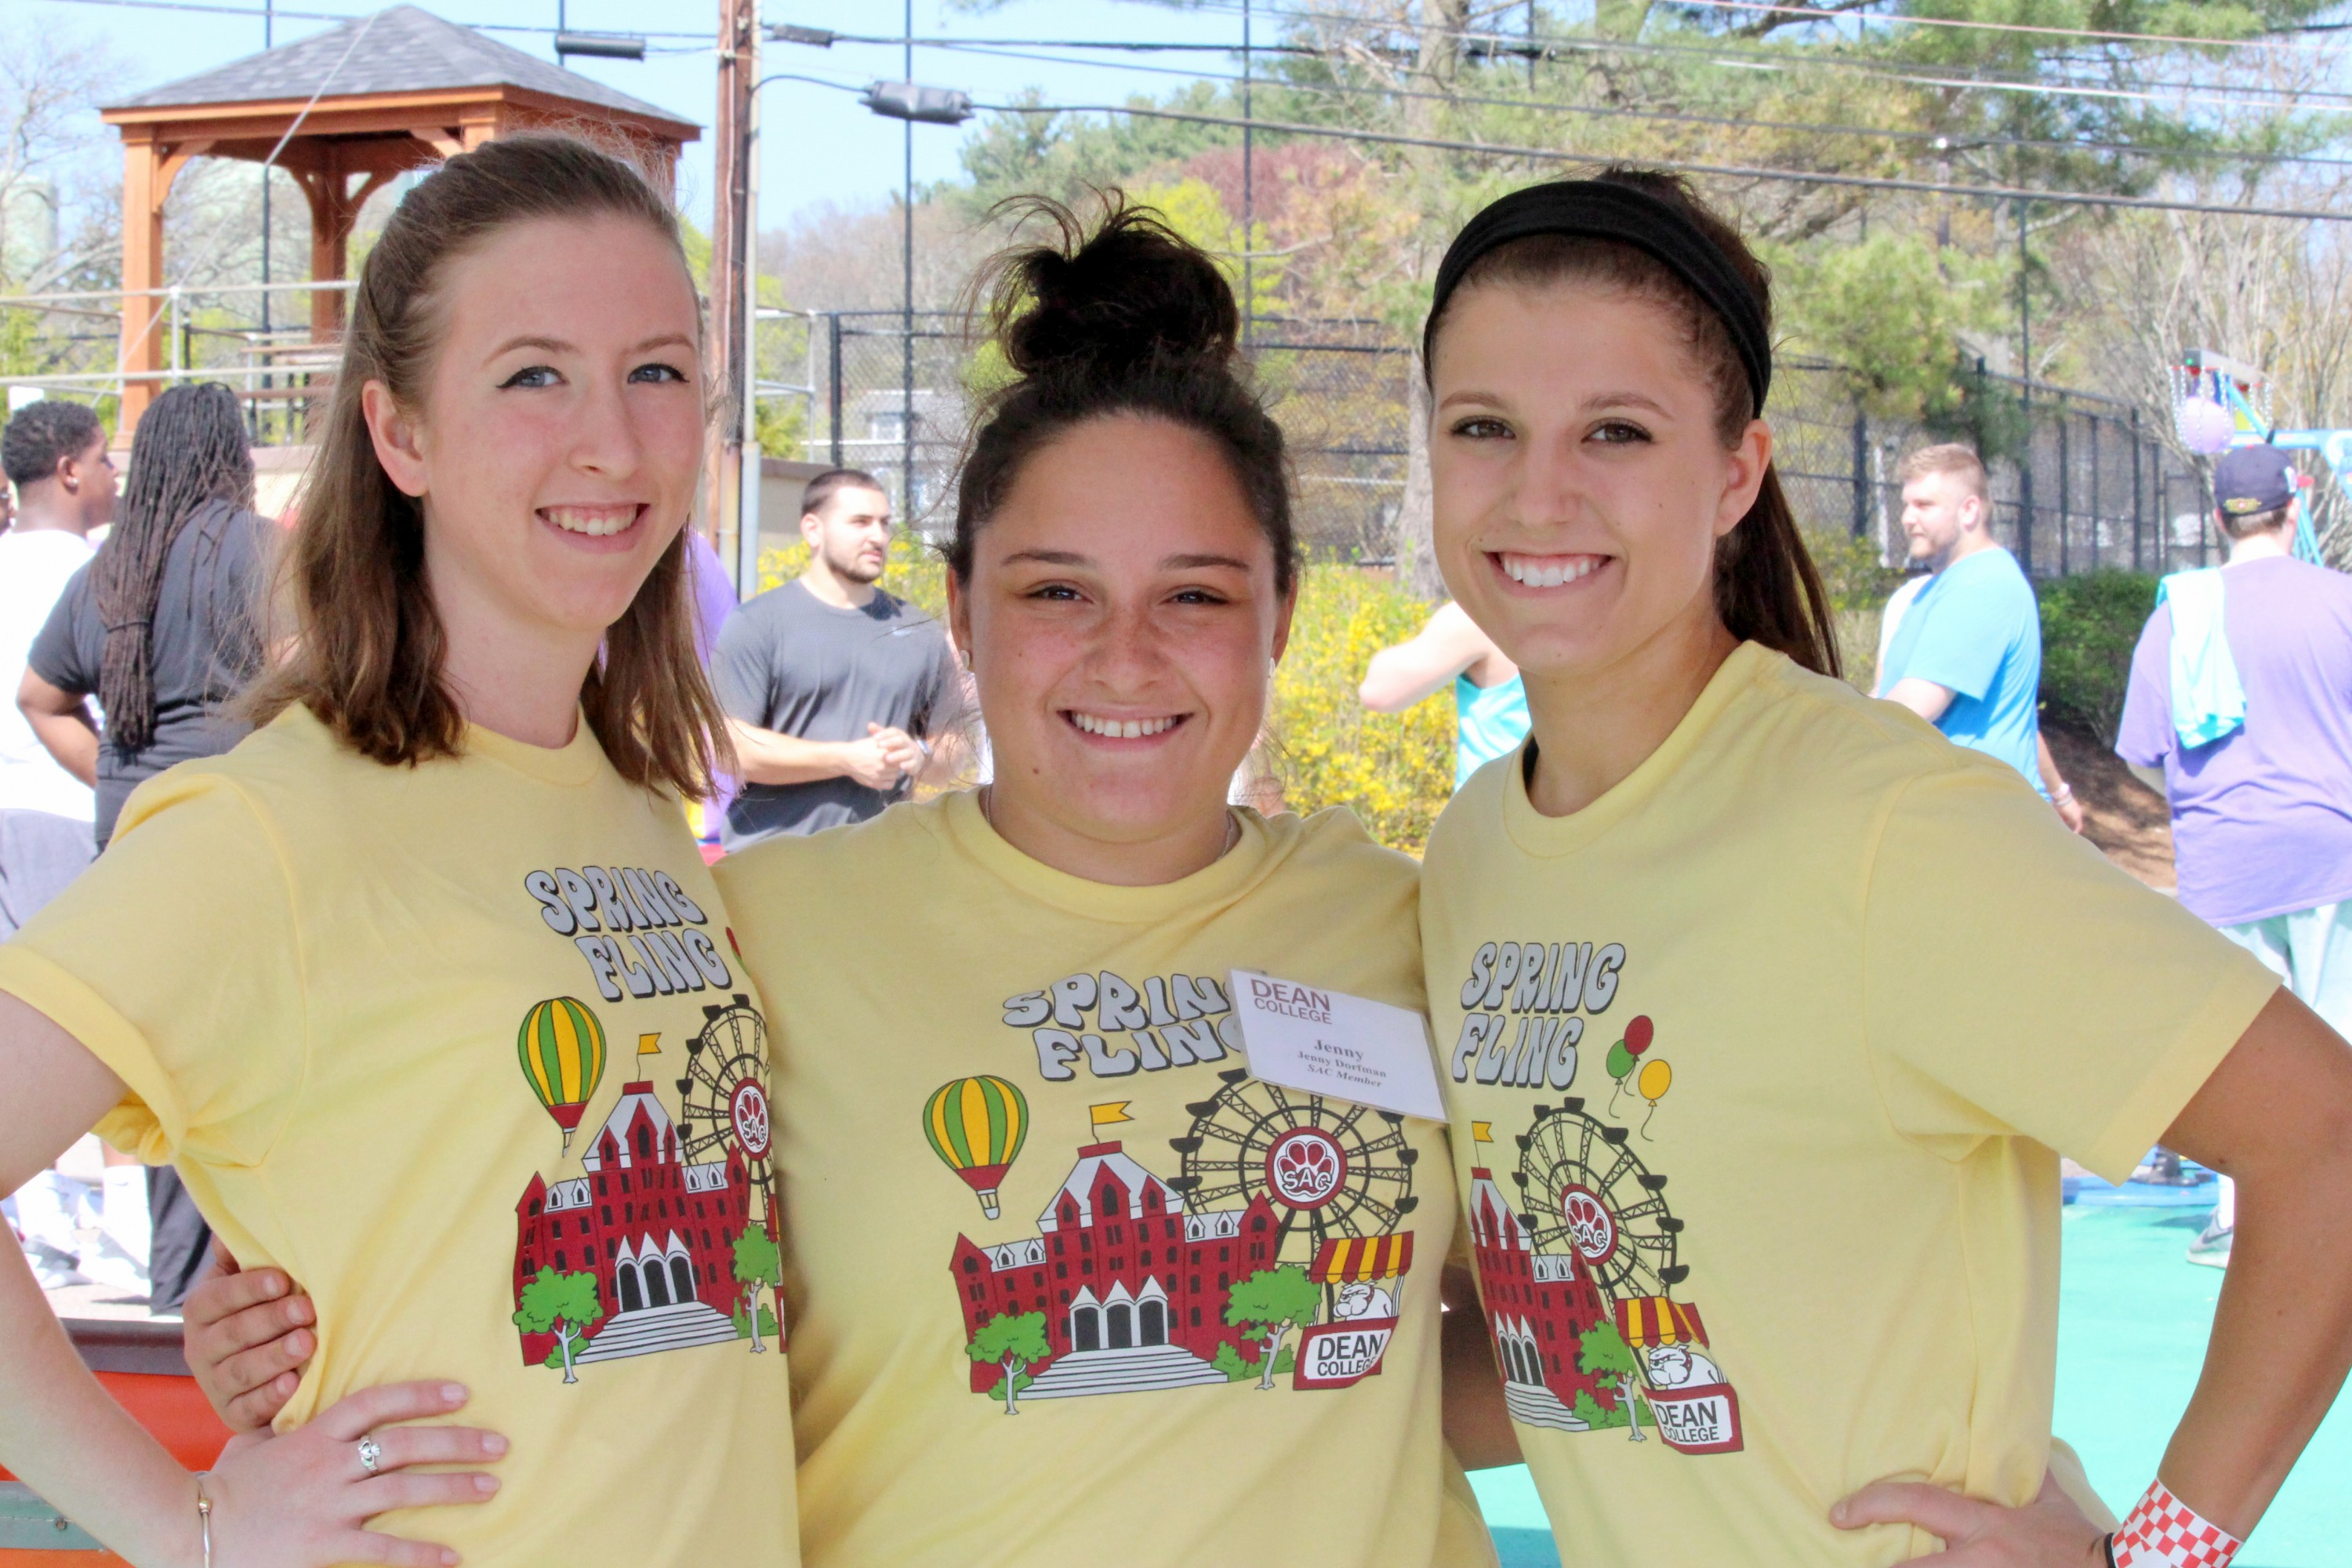 three students smiling at the camera, each wearing dean college club t-shirts